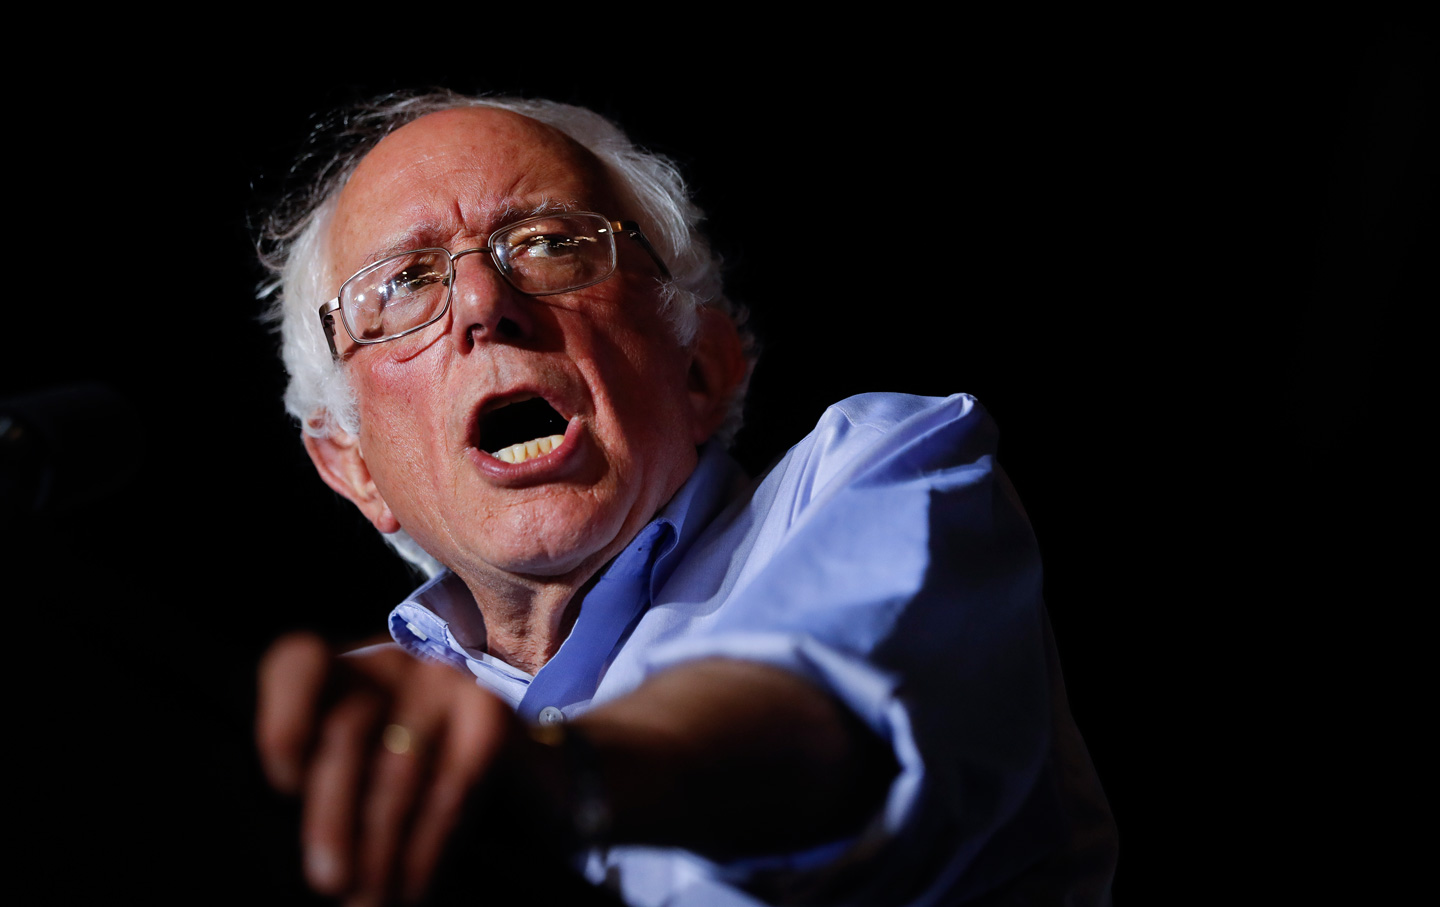 Sanders Scare-Quotes 'Enemy' in Describing Soviet Union During Foreign Policy Speech